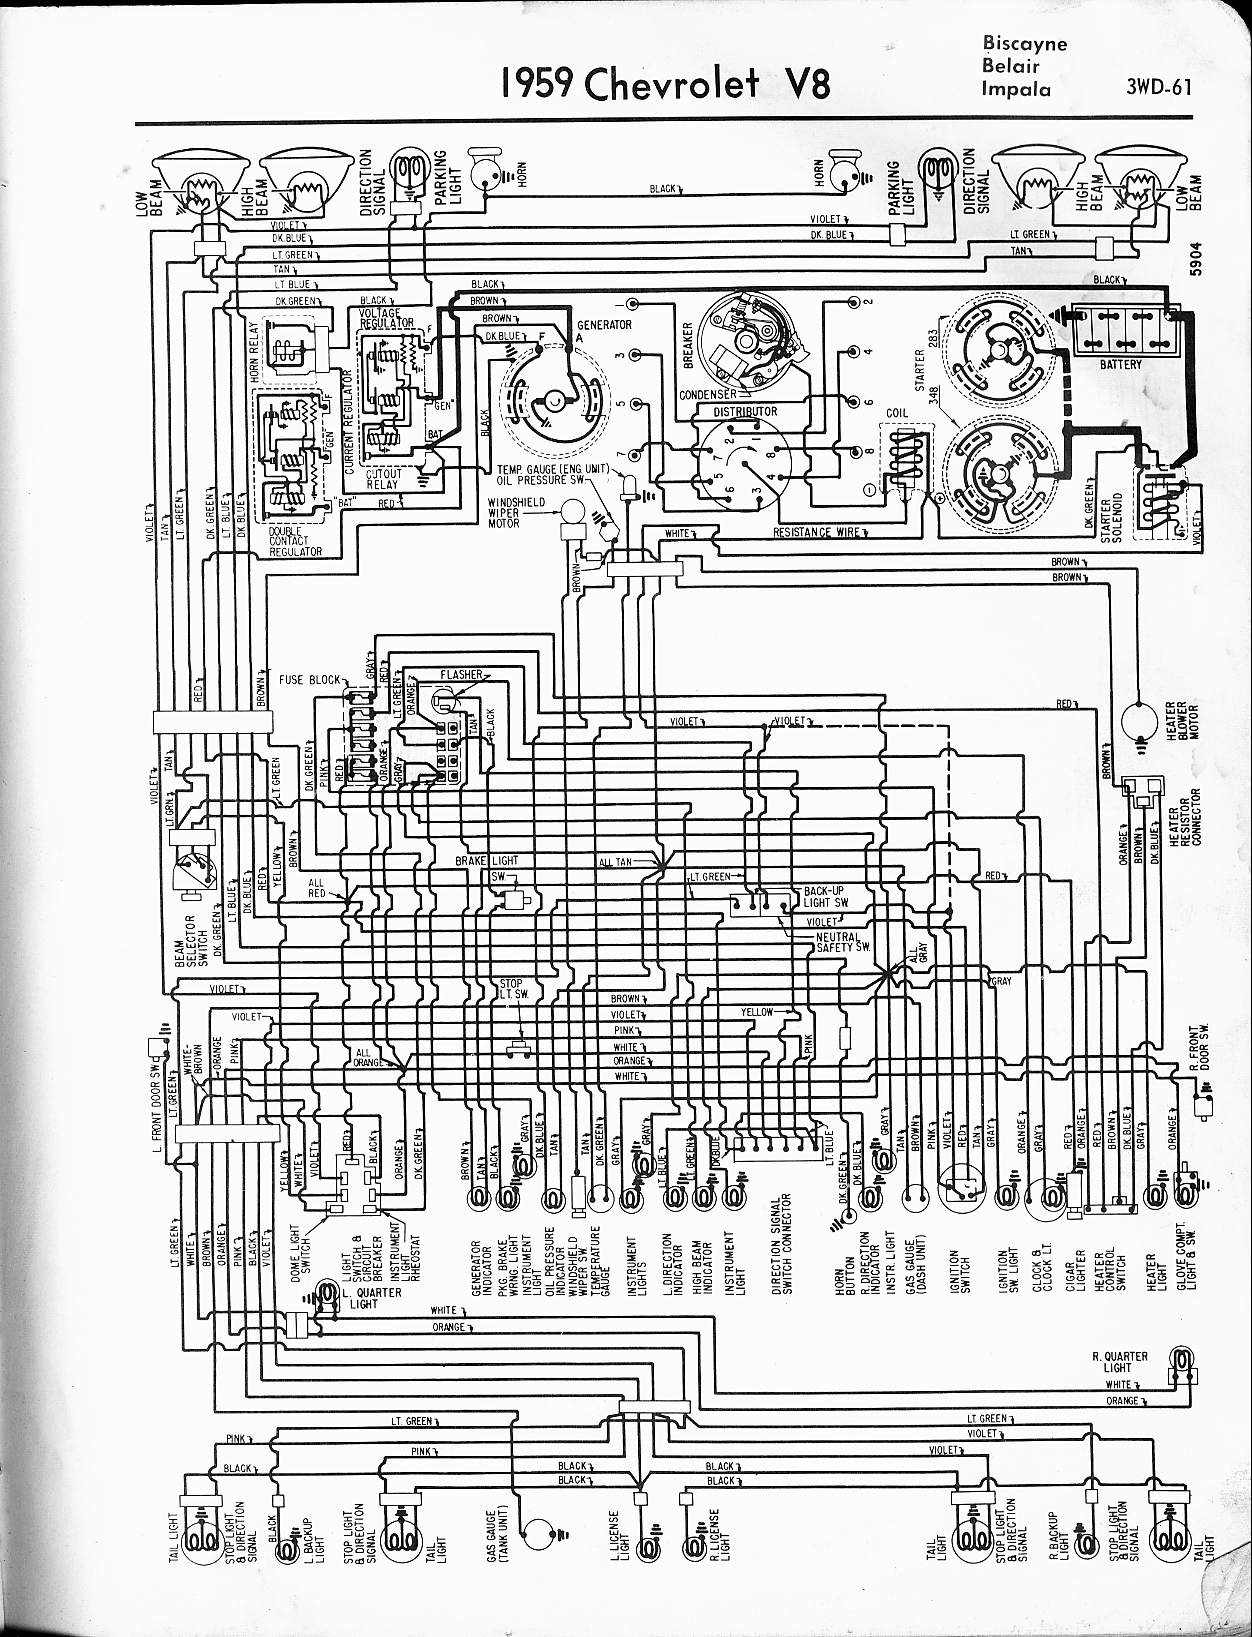 2005 impala ignition switch wiring diagram Collection-1959 V8 Biscayne Belair Impala 12-j